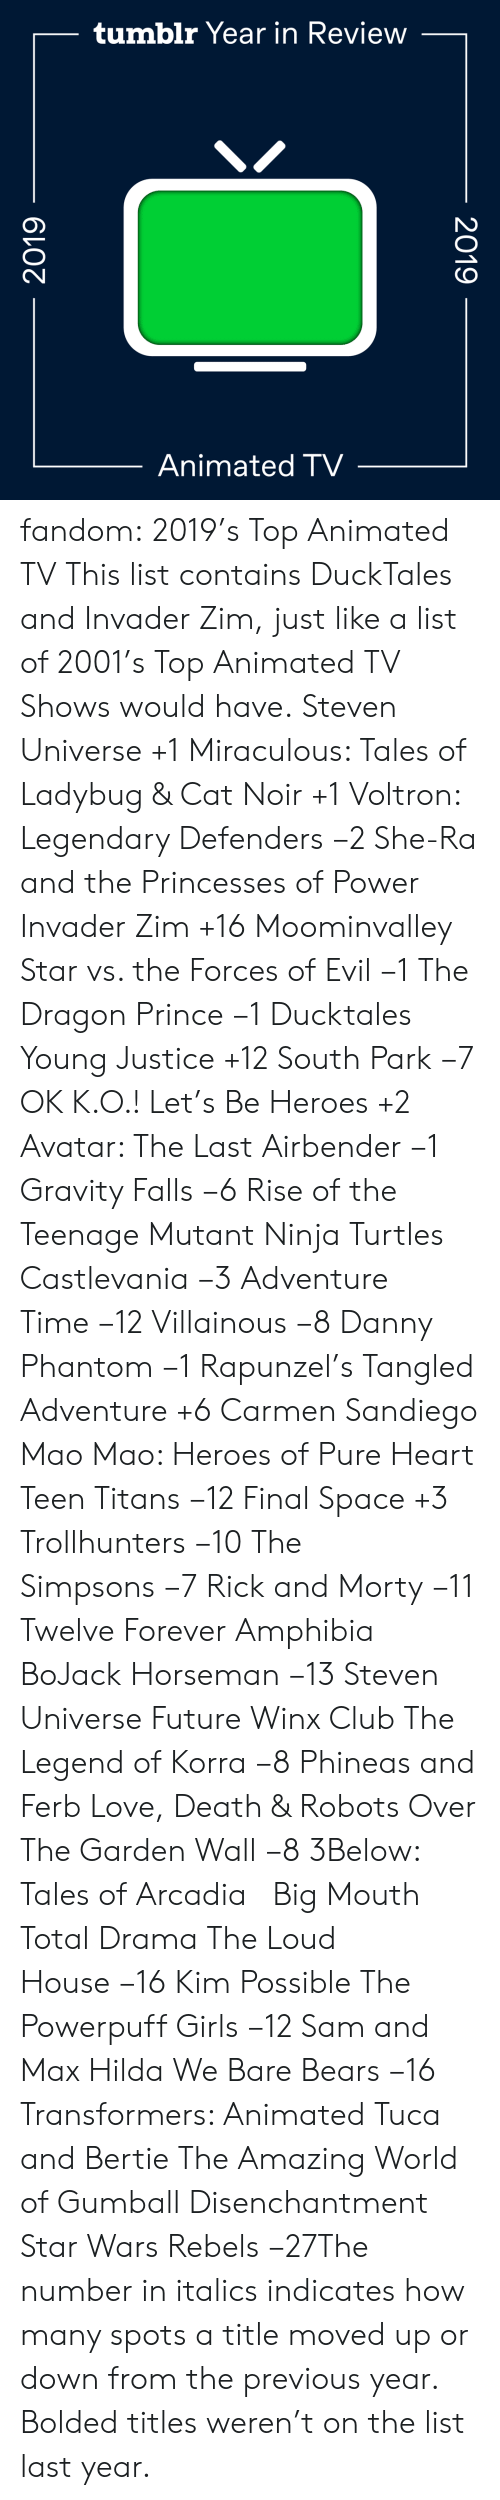 danny: tumblr Year in Review  Animated TV  2019  2019 fandom:  2019's Top Animated TV  This list contains DuckTales and Invader Zim, just like a list of 2001's Top Animated TV Shows would have.  Steven Universe +1  Miraculous: Tales of Ladybug & Cat Noir +1  Voltron: Legendary Defenders −2  She-Ra and the Princesses of Power   Invader Zim +16  Moominvalley  Star vs. the Forces of Evil −1  The Dragon Prince −1  Ducktales  Young Justice +12  South Park −7  OK K.O.! Let's Be Heroes +2  Avatar: The Last Airbender −1  Gravity Falls −6  Rise of the Teenage Mutant Ninja Turtles  Castlevania −3  Adventure Time −12  Villainous −8  Danny Phantom −1  Rapunzel's Tangled Adventure +6  Carmen Sandiego  Mao Mao: Heroes of Pure Heart  Teen Titans −12  Final Space +3  Trollhunters −10  The Simpsons −7  Rick and Morty −11  Twelve Forever  Amphibia  BoJack Horseman −13  Steven Universe Future  Winx Club  The Legend of Korra −8  Phineas and Ferb  Love, Death & Robots  Over The Garden Wall −8  3Below: Tales of Arcadia    Big Mouth  Total Drama  The Loud House −16  Kim Possible  The Powerpuff Girls −12  Sam and Max  Hilda  We Bare Bears −16  Transformers: Animated  Tuca and Bertie  The Amazing World of Gumball  Disenchantment Star Wars Rebels −27The number in italics indicates how many spots a title moved up or down from the previous year. Bolded titles weren't on the list last year.